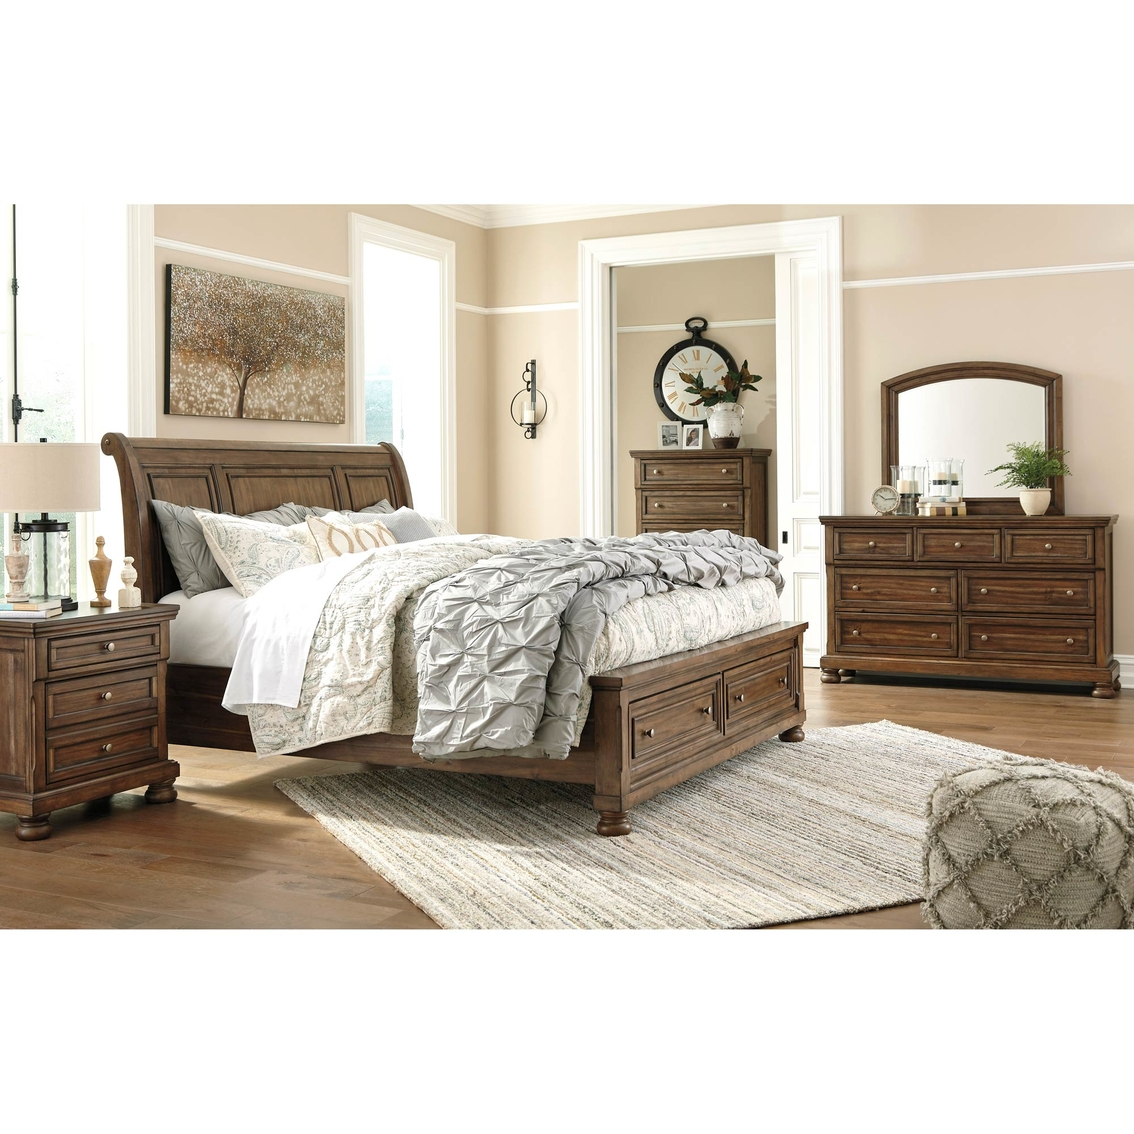 Signature Design By Ashley Flynnter 5 Pc. Storage Bed Set | Bedroom ...